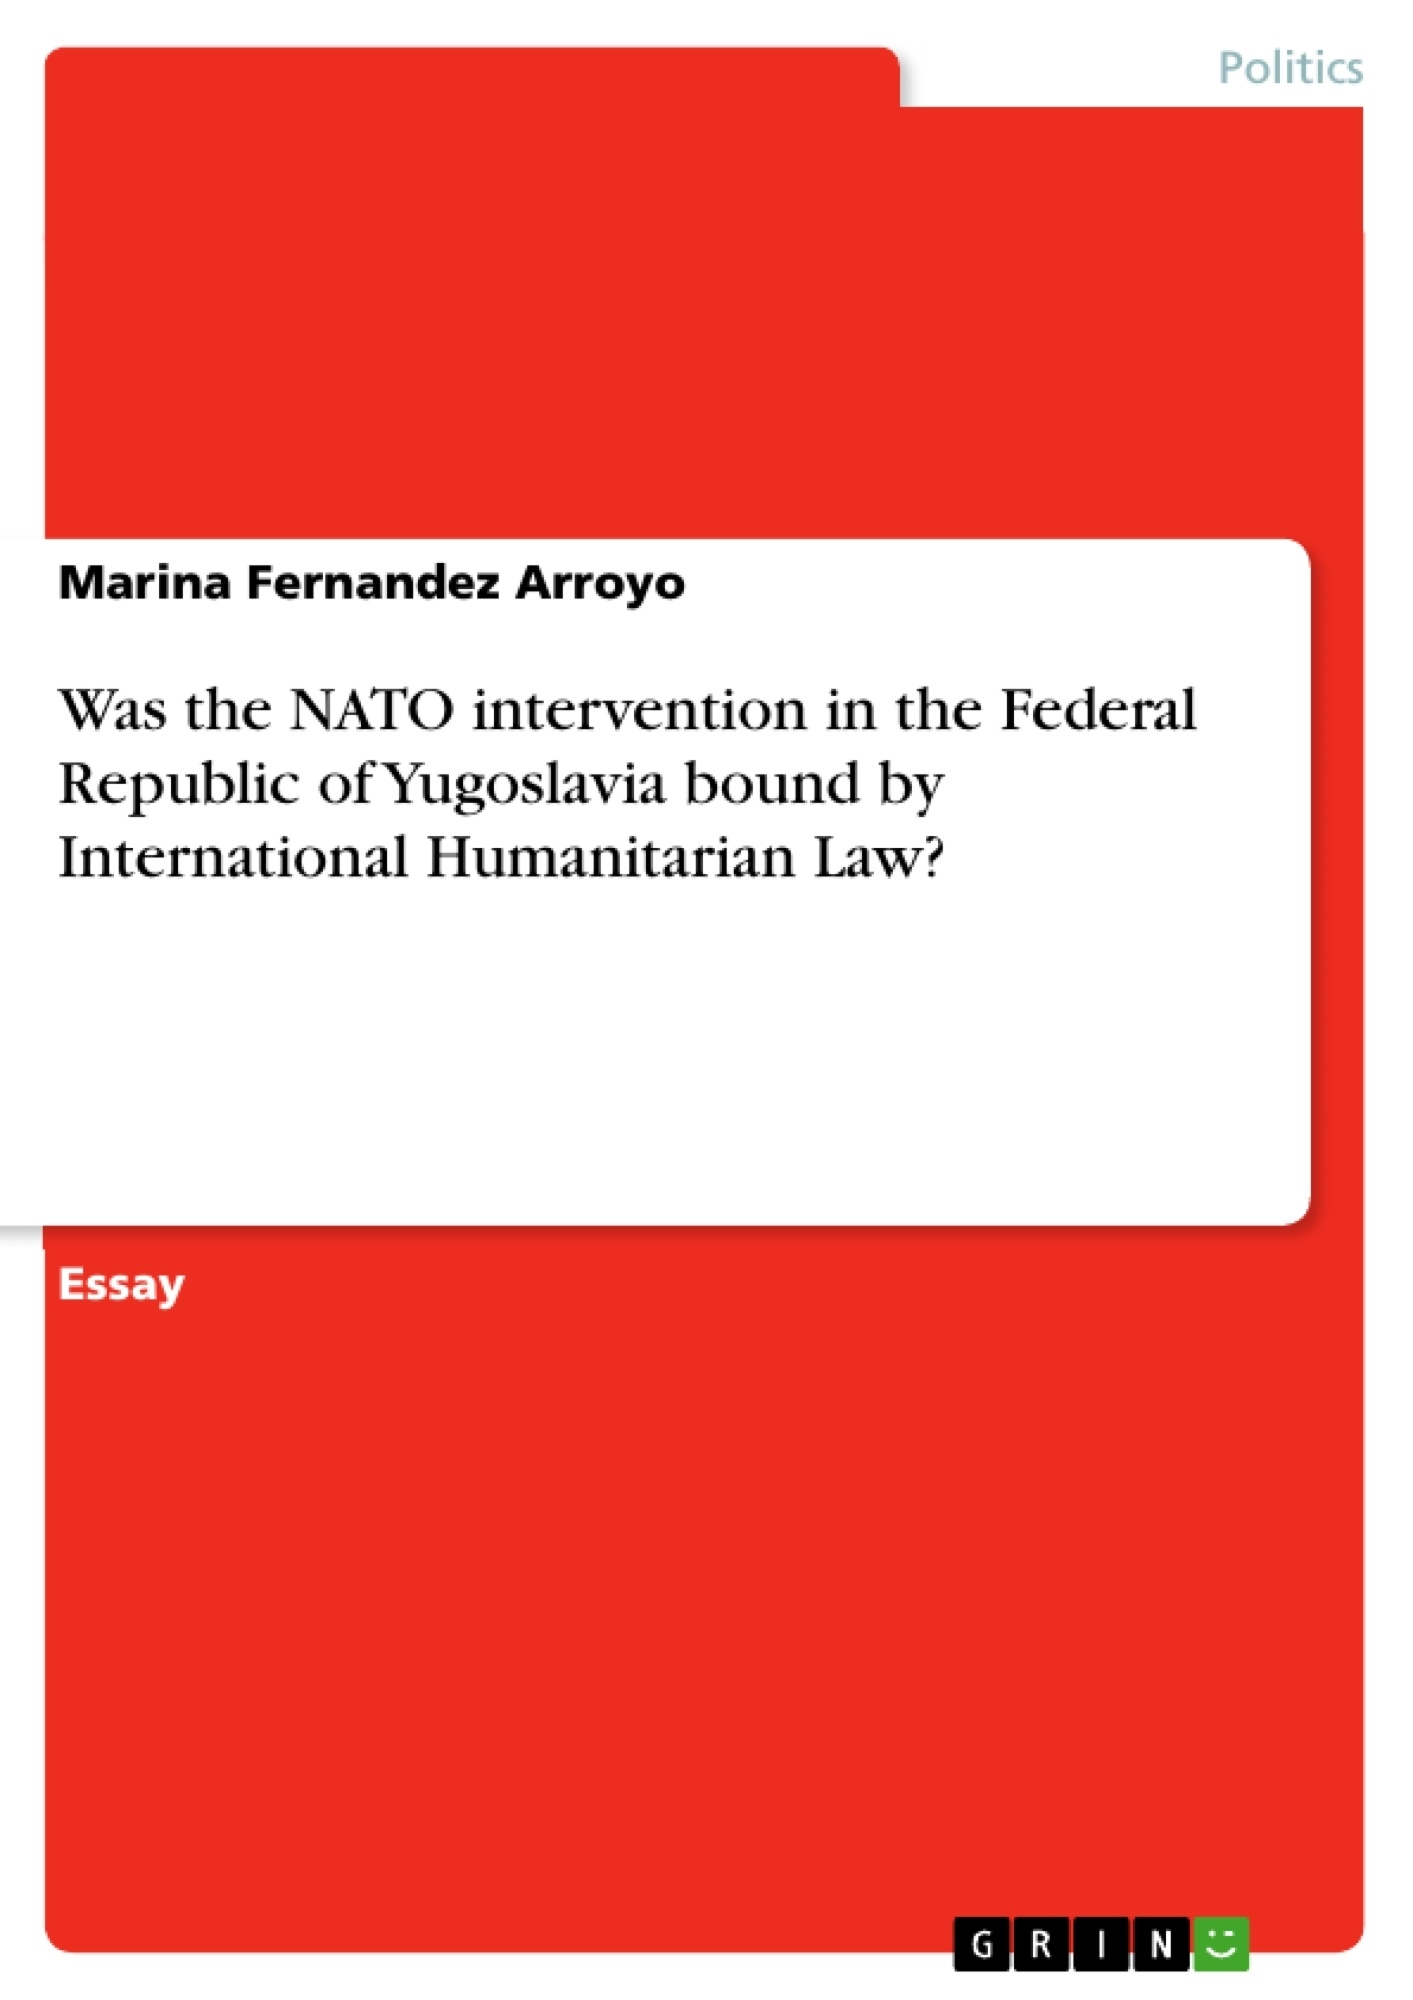 Title: Was the NATO intervention in the Federal Republic of Yugoslavia bound by International Humanitarian Law?